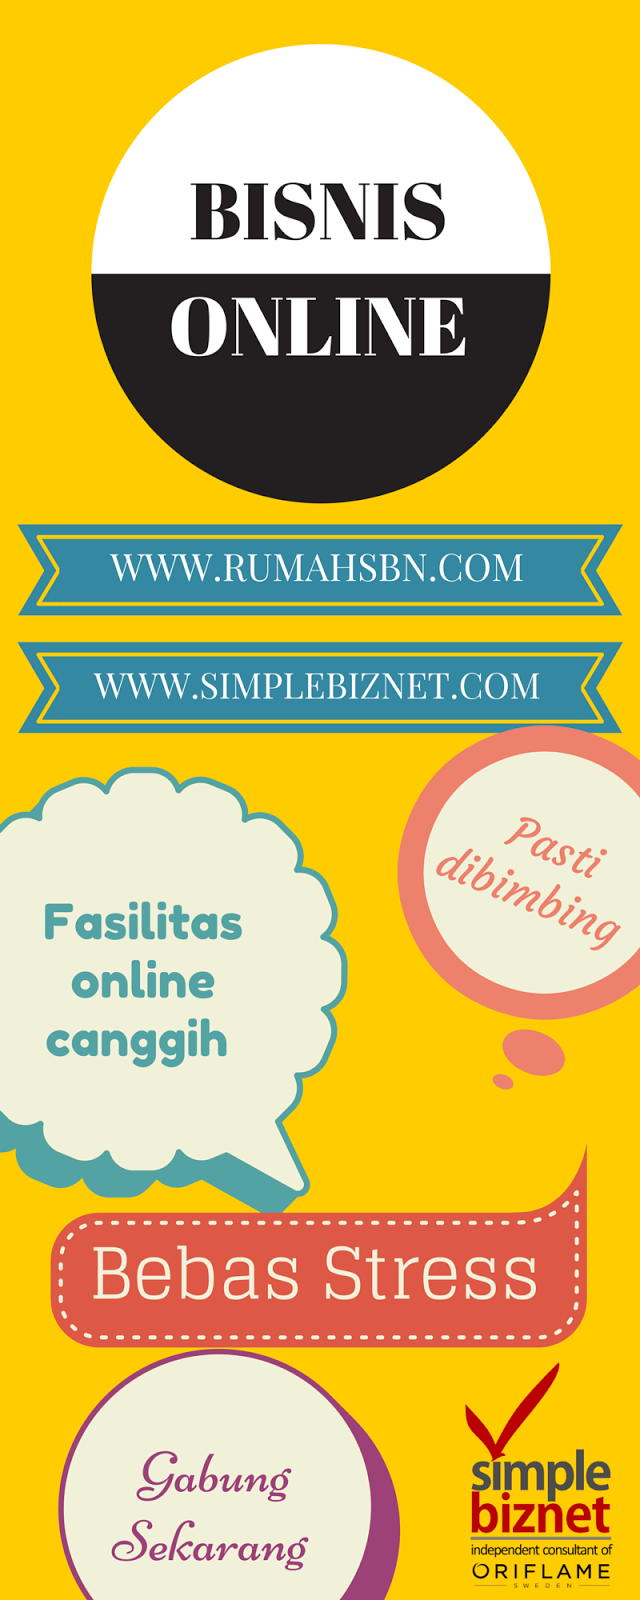 Berbisnis Online? Why Not?